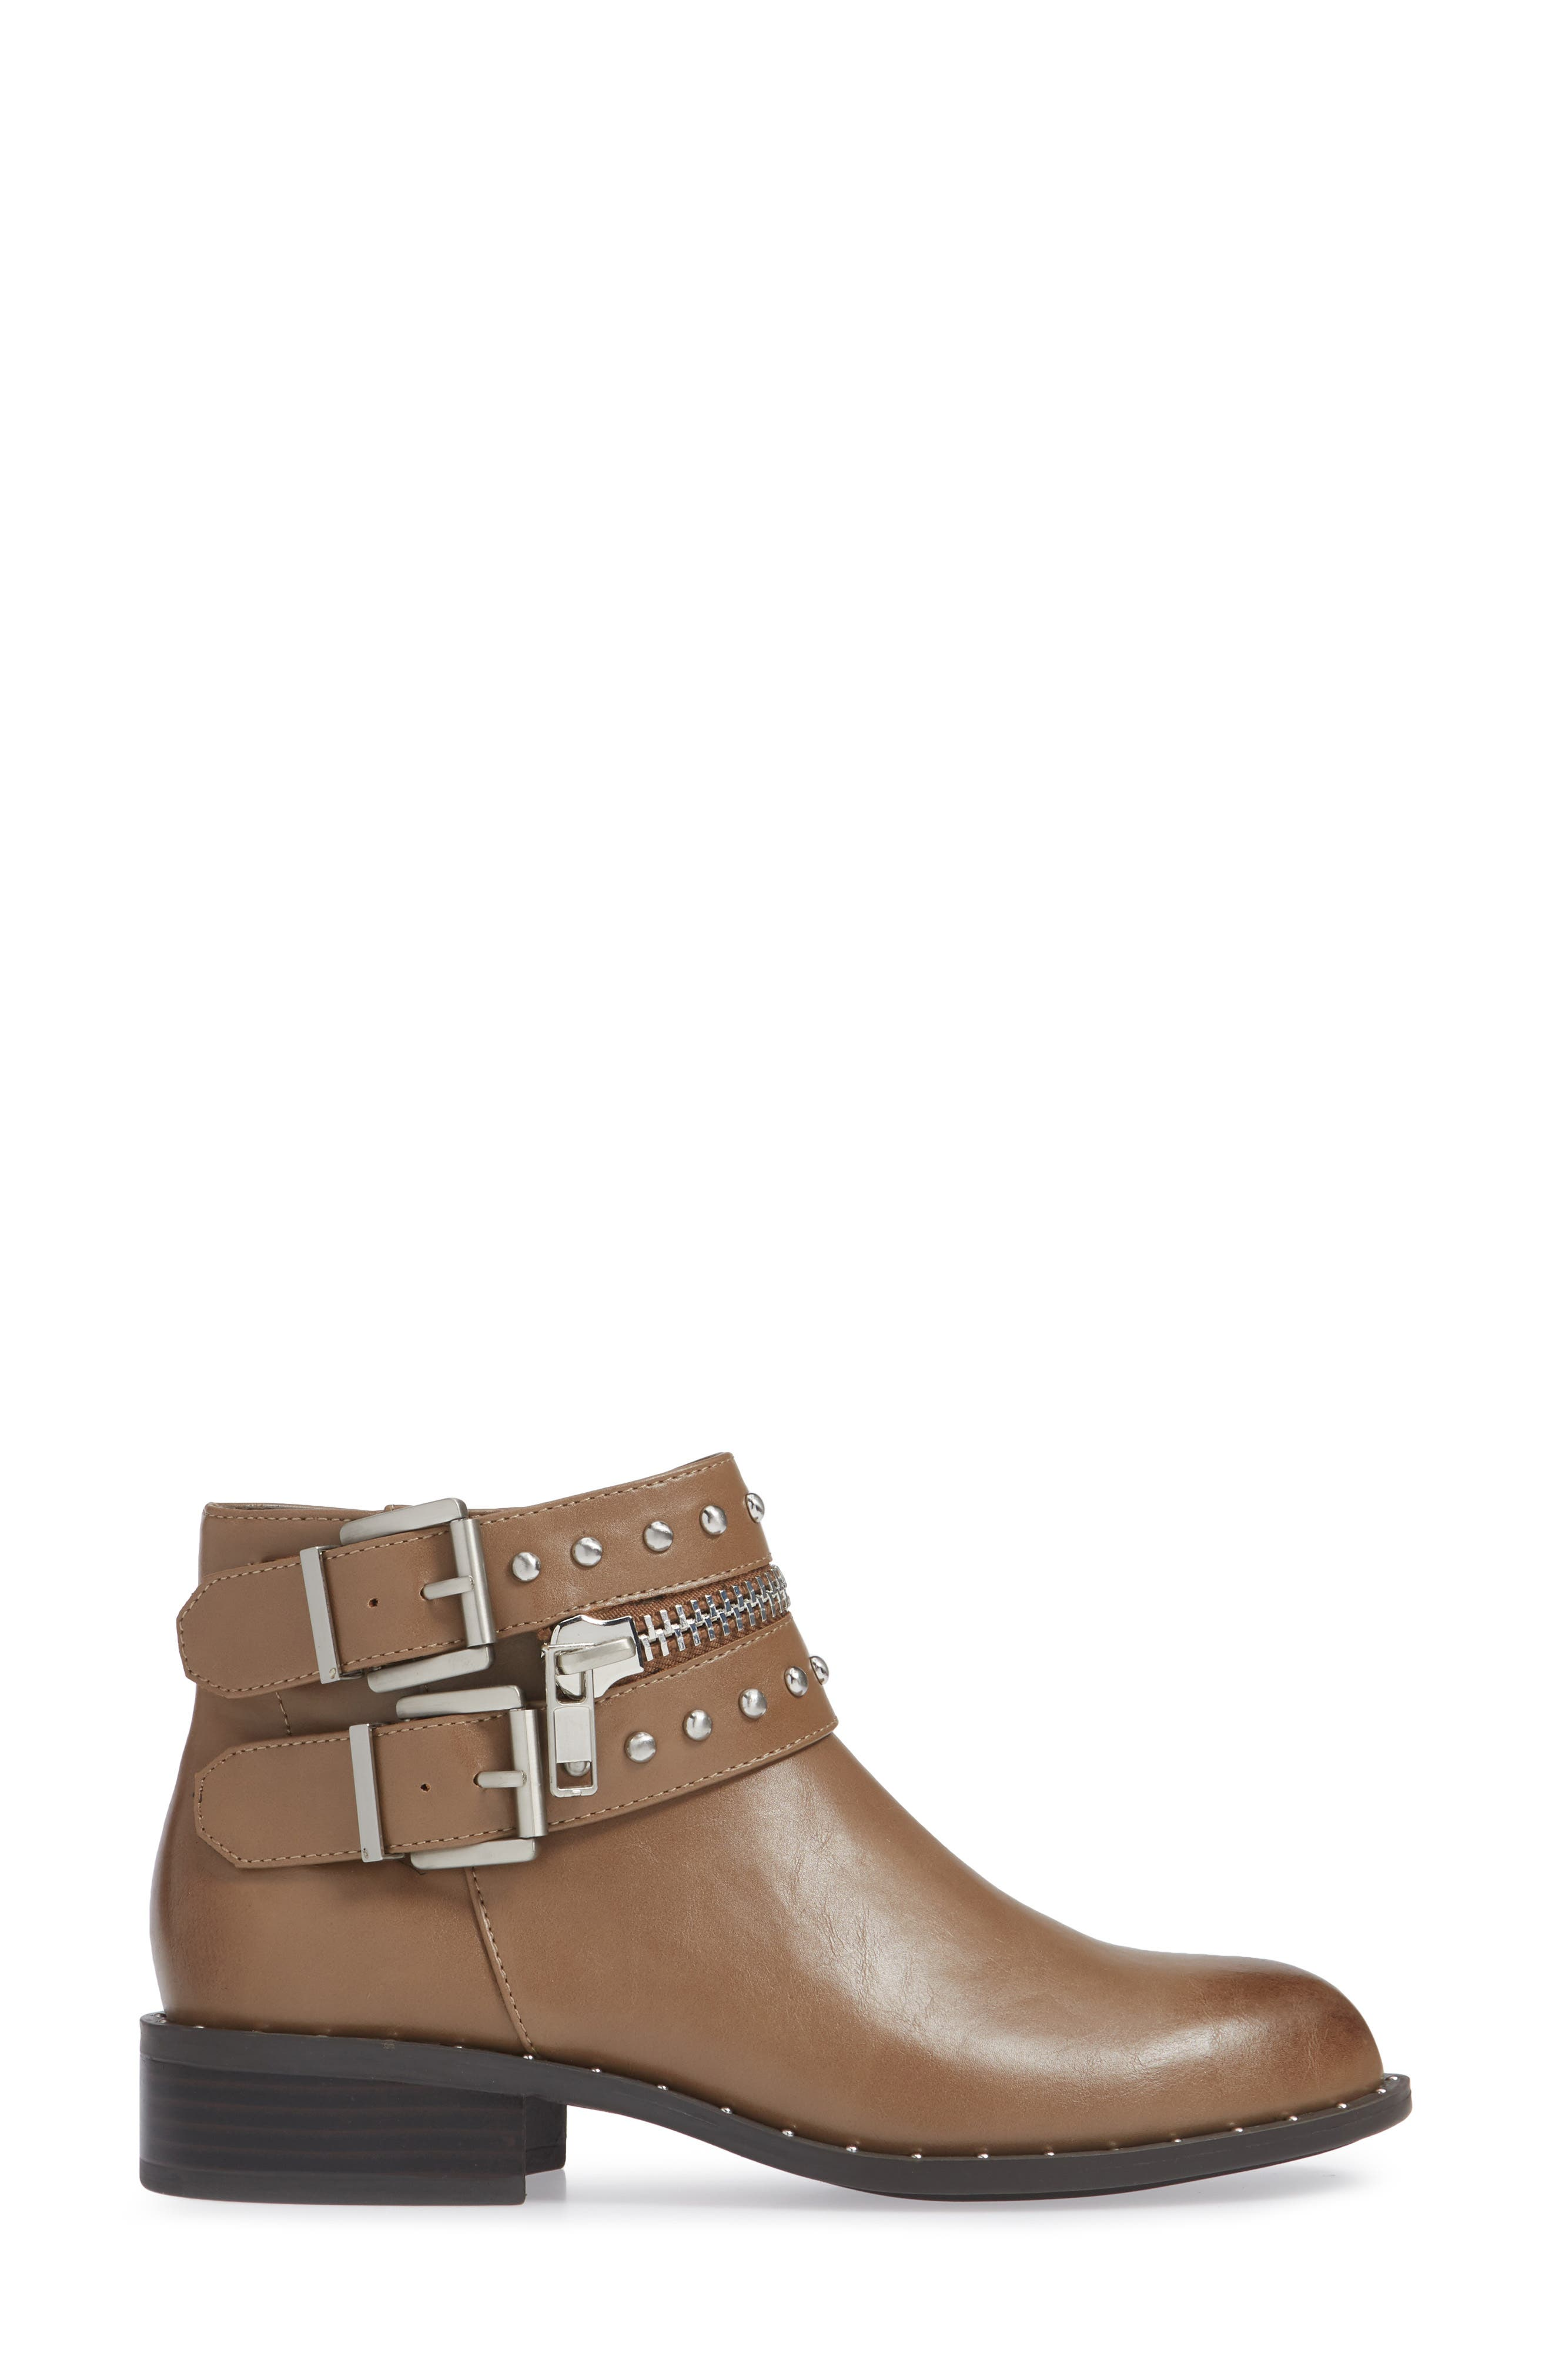 CHARLES BY CHARLES DAVID, Thief Studded Bootie, Alternate thumbnail 3, color, TAUPE SYNTHETIC